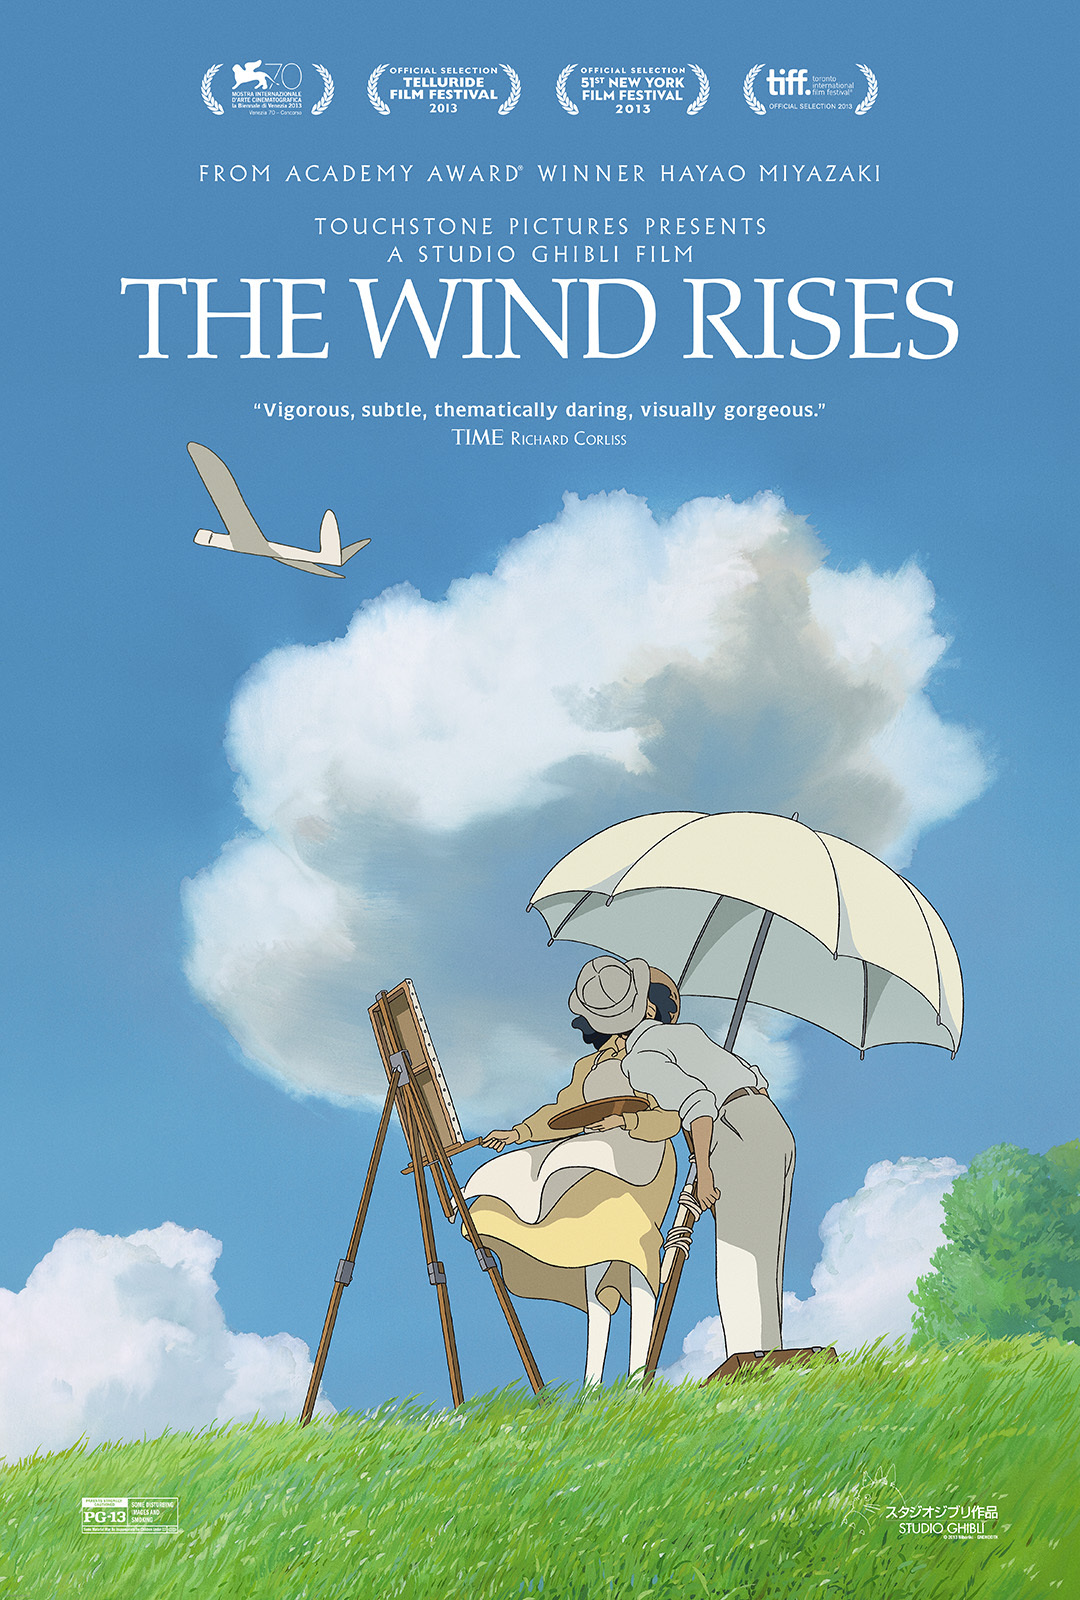 Image result for The WIND RISES MOVIE